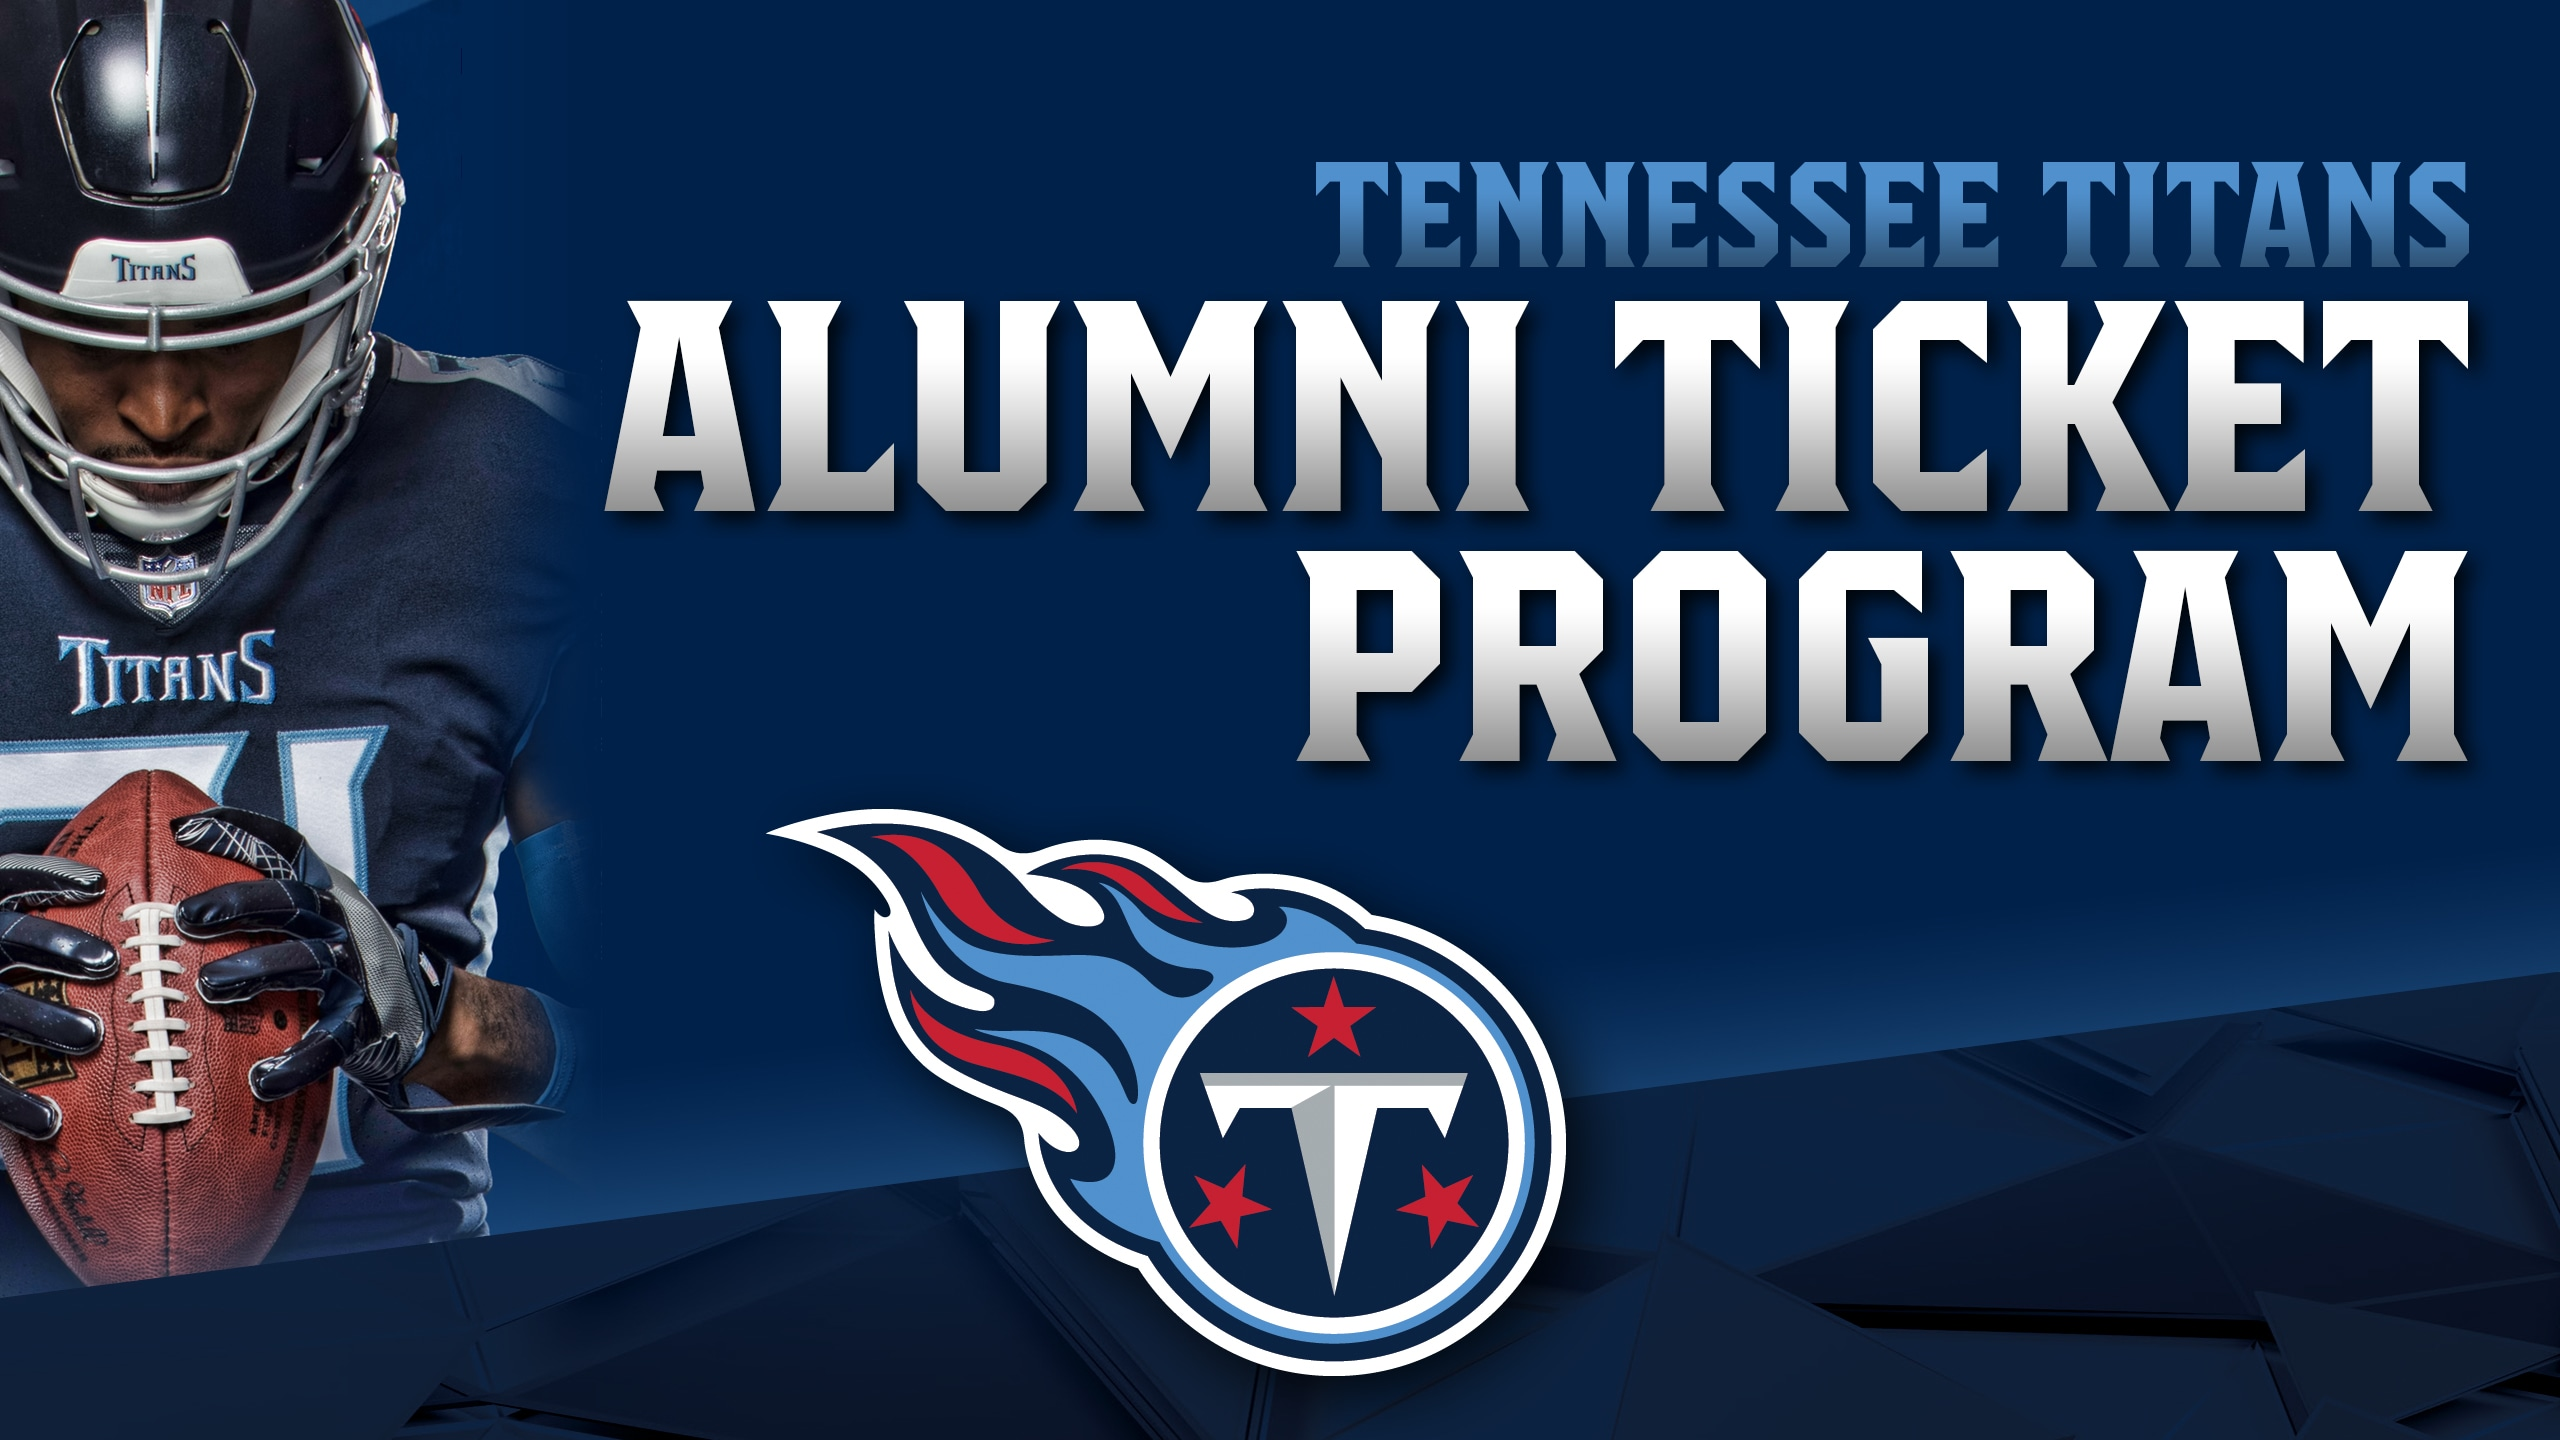 Titans Alumni Ticket Program